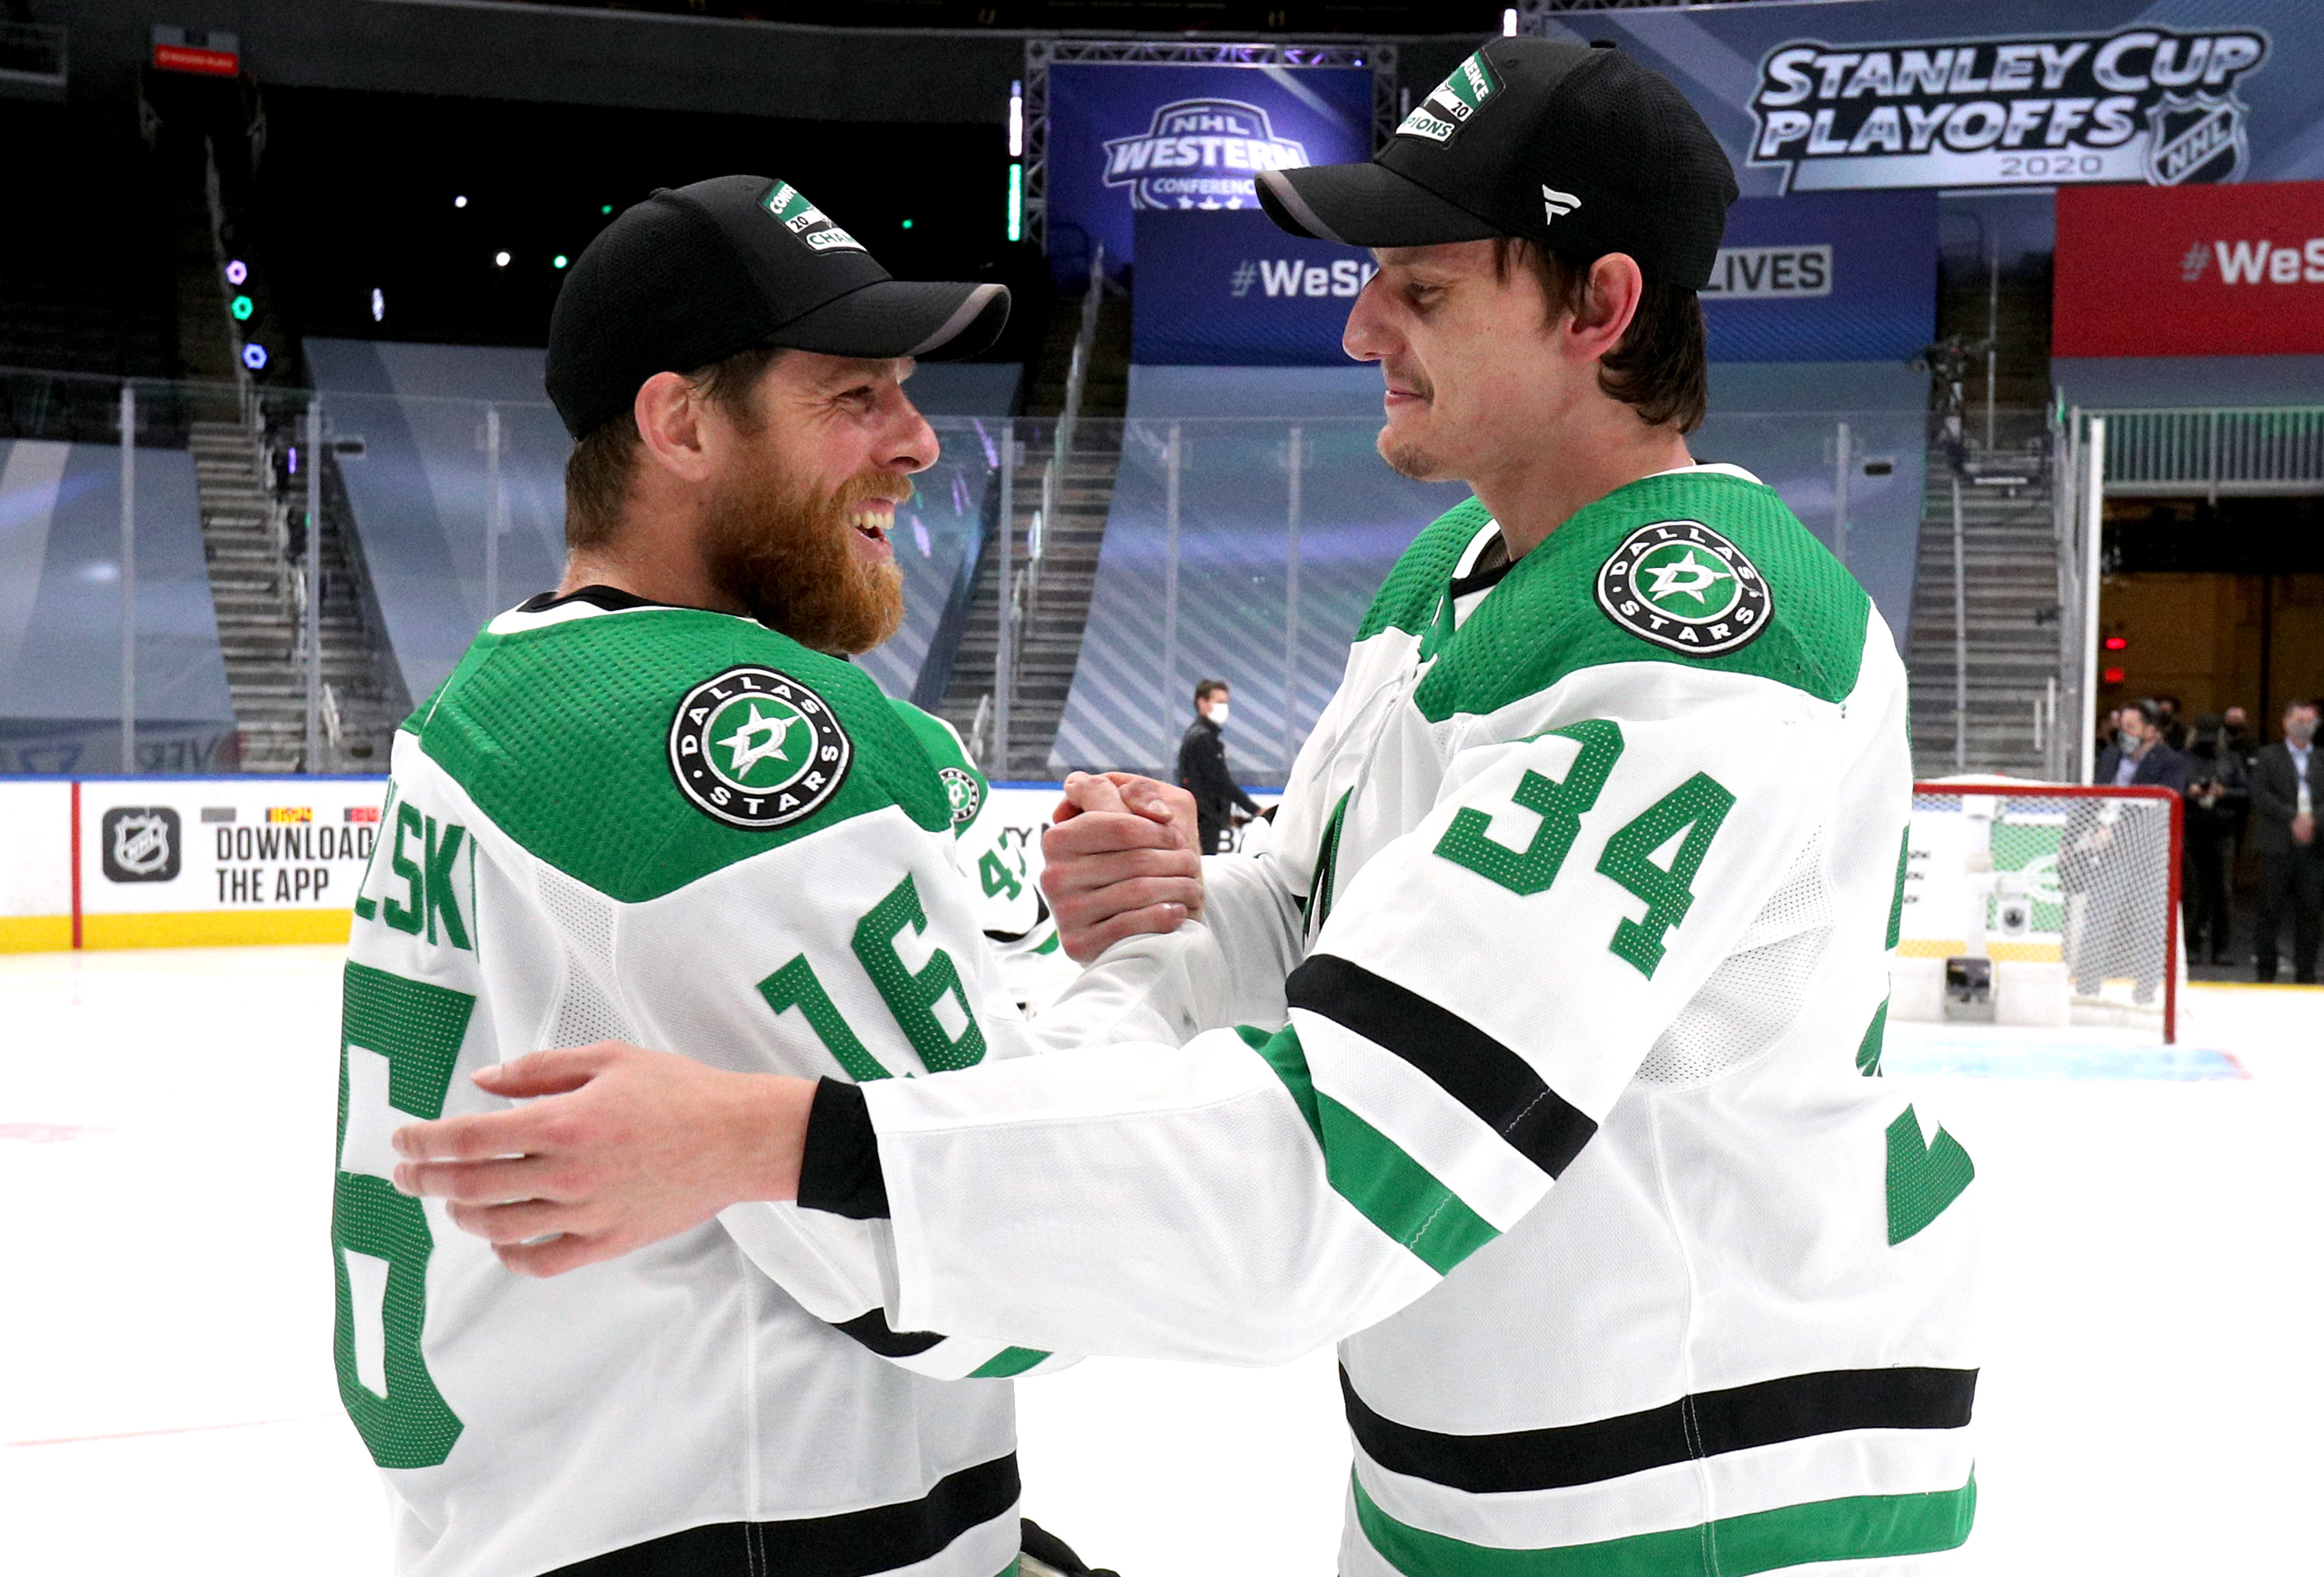 Denis Gurianov #34 and Joe Pavelski #16 of the Dallas Stars shake hands after the Stars 3-2 overtime win in Game 5 of the Western Conference Final of the 2020 NHL Stanley Cup Playoffs between the Dallas Stars and the Vegas Golden Knights at Rogers Place on September 14, 2020 in Edmonton, Alberta.